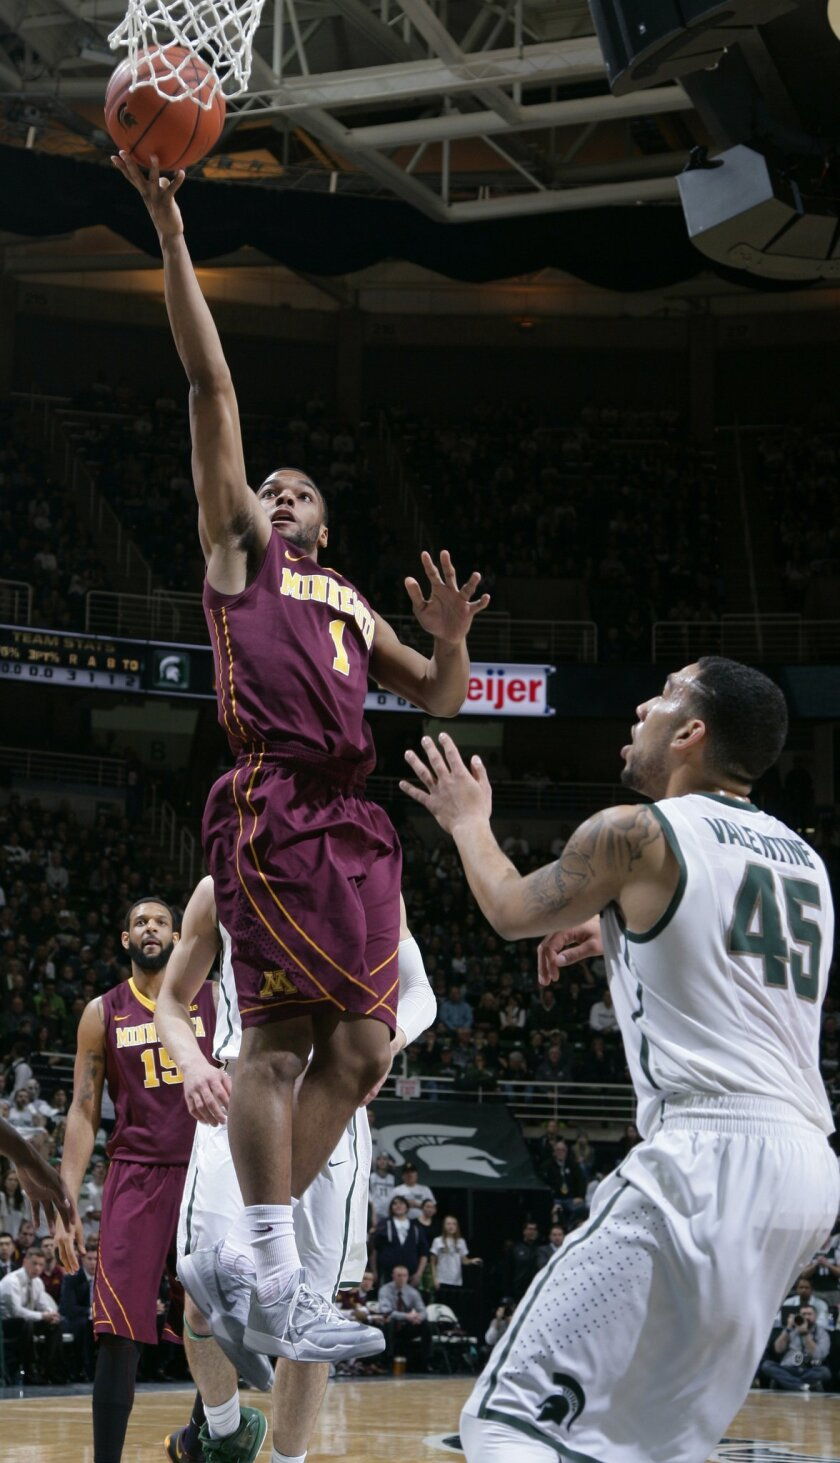 Minnesota's Andre Hollins (1) puts up a layup against Michigan State's Denzel Valentine (45) during the first half of an NCAA college basketball game, Thursday, Feb. 26, 2015, in East Lansing, Mich. (AP Photo/Al Goldis)